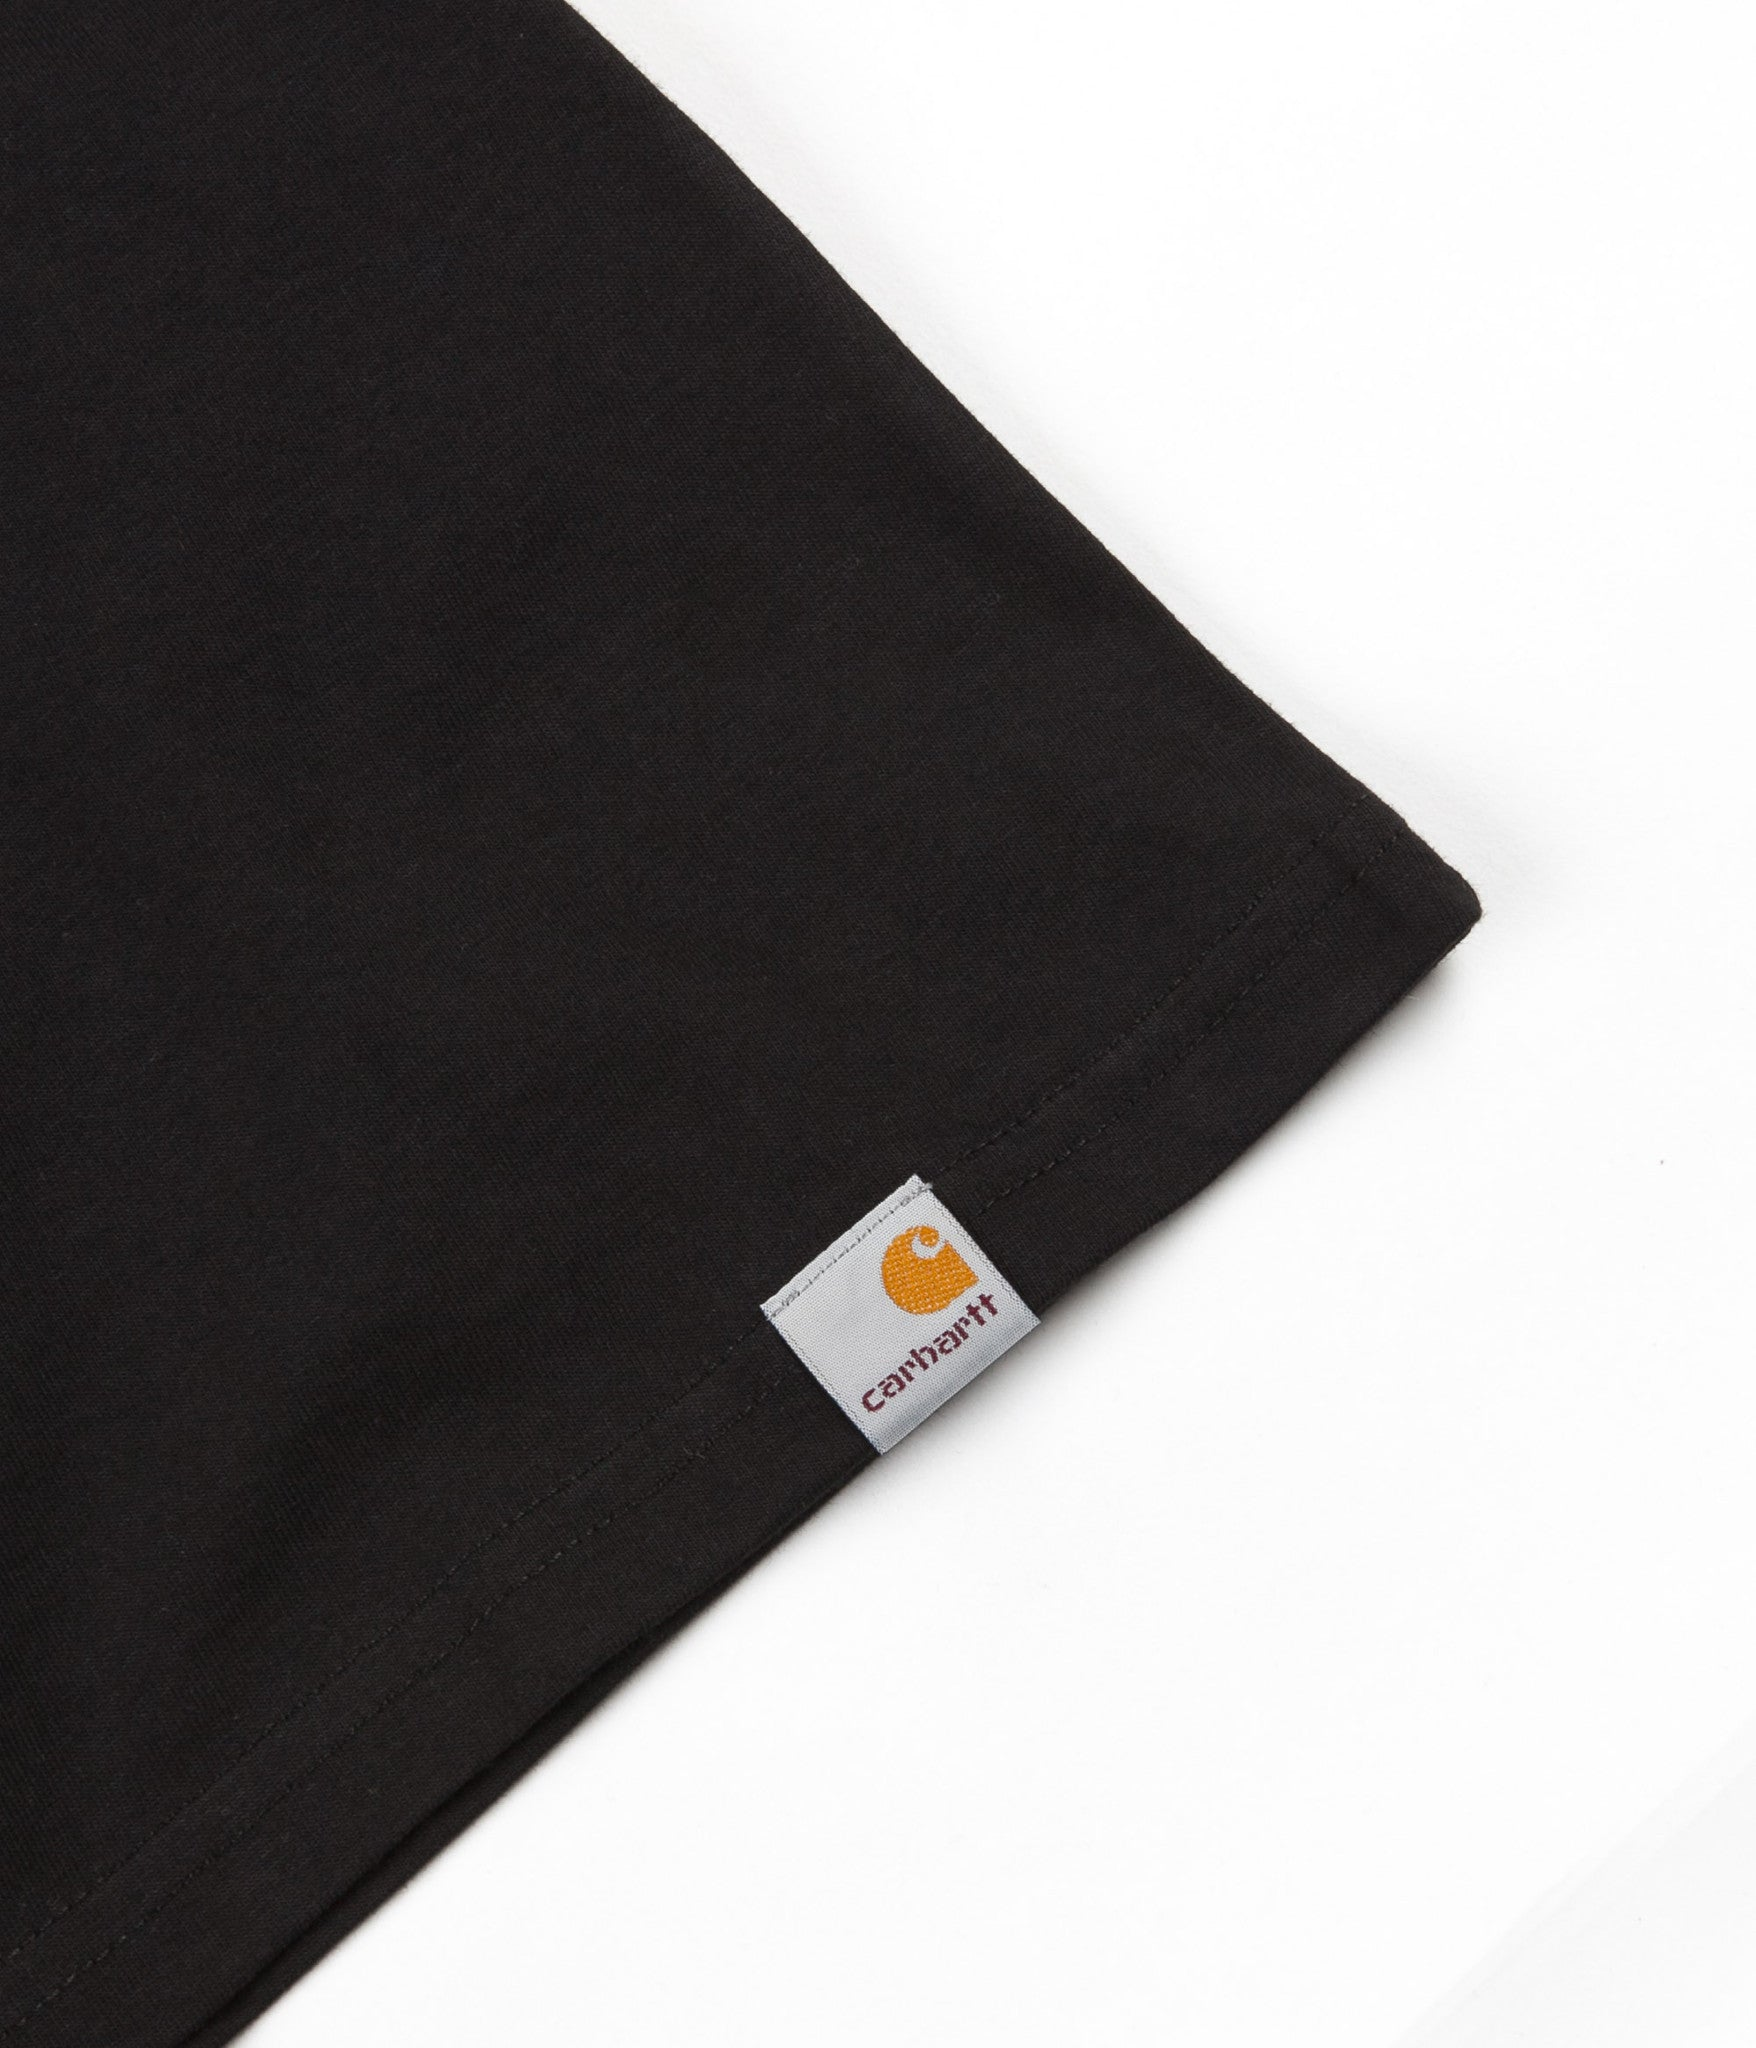 Carhartt Mainstream T-Shirt - Black